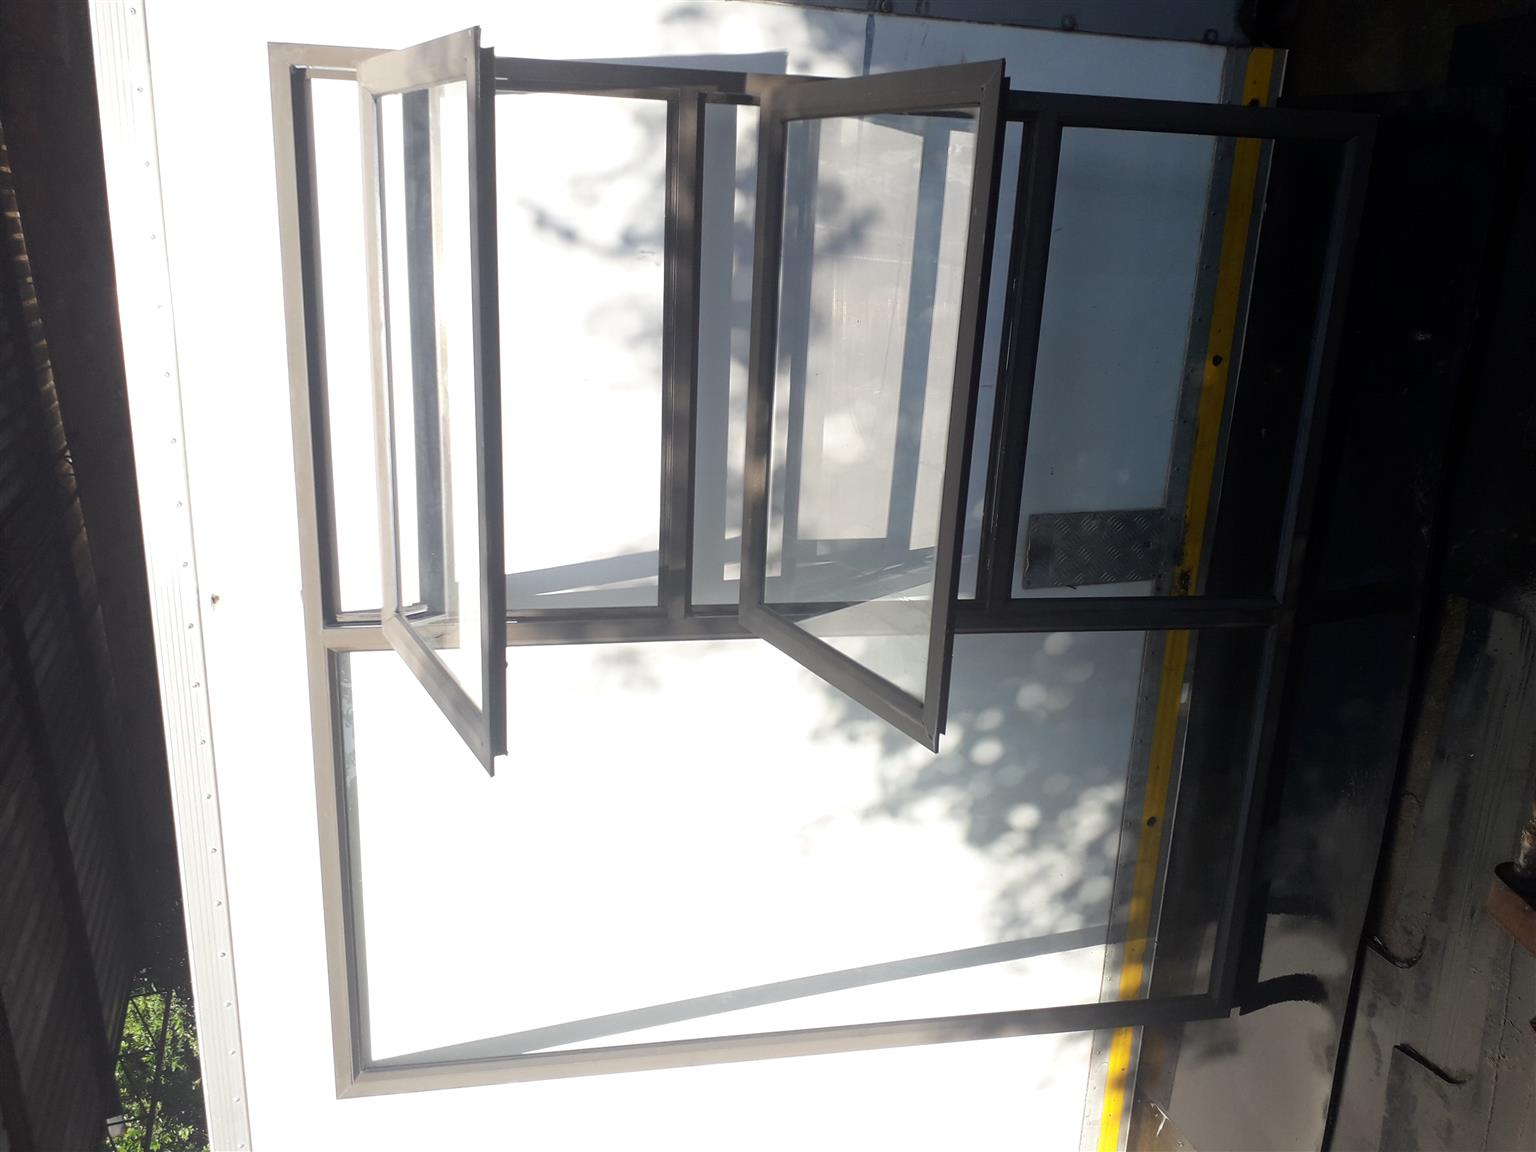 Aluminium windows and sliding door.